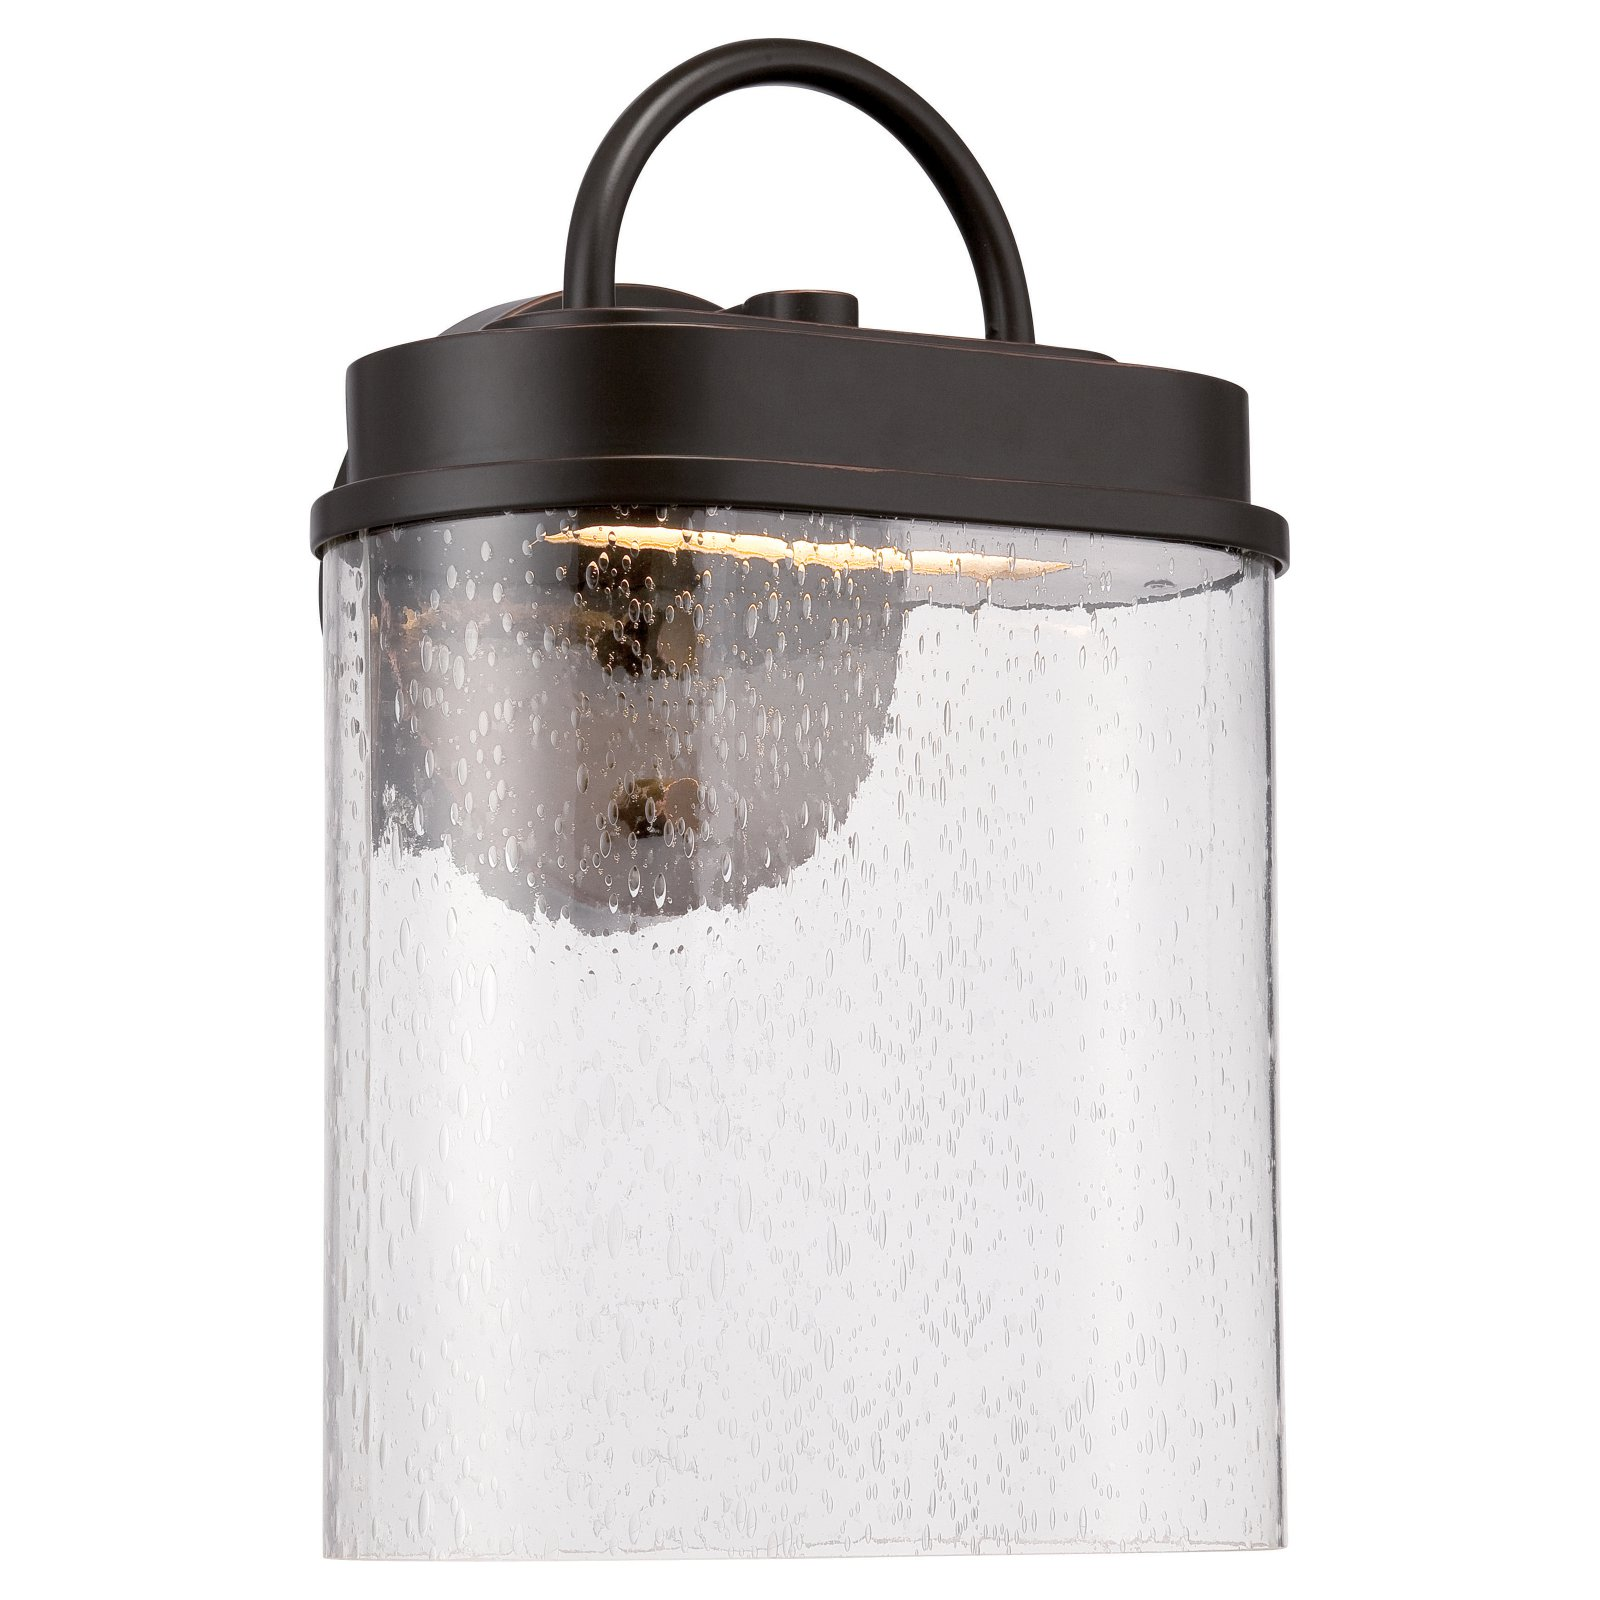 Nuvo Hunt 62-626 Outdoor Wall Sconce